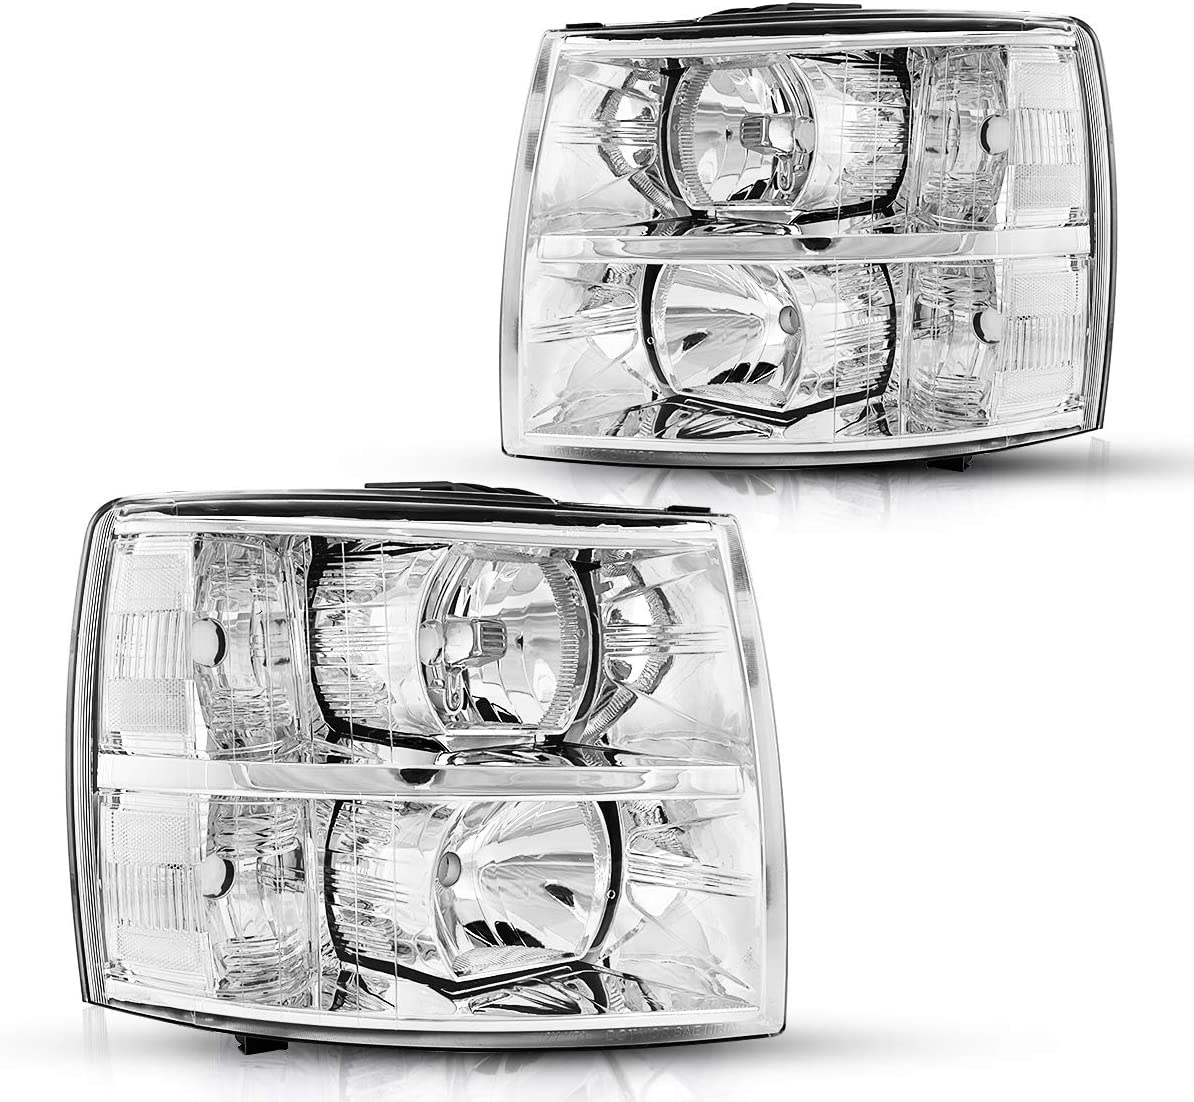 OE # 25833678//22853028 Torchbeam Replacement Headlight Assembly for 2007-2013 Chevrolet Silverado 25833679//22853027